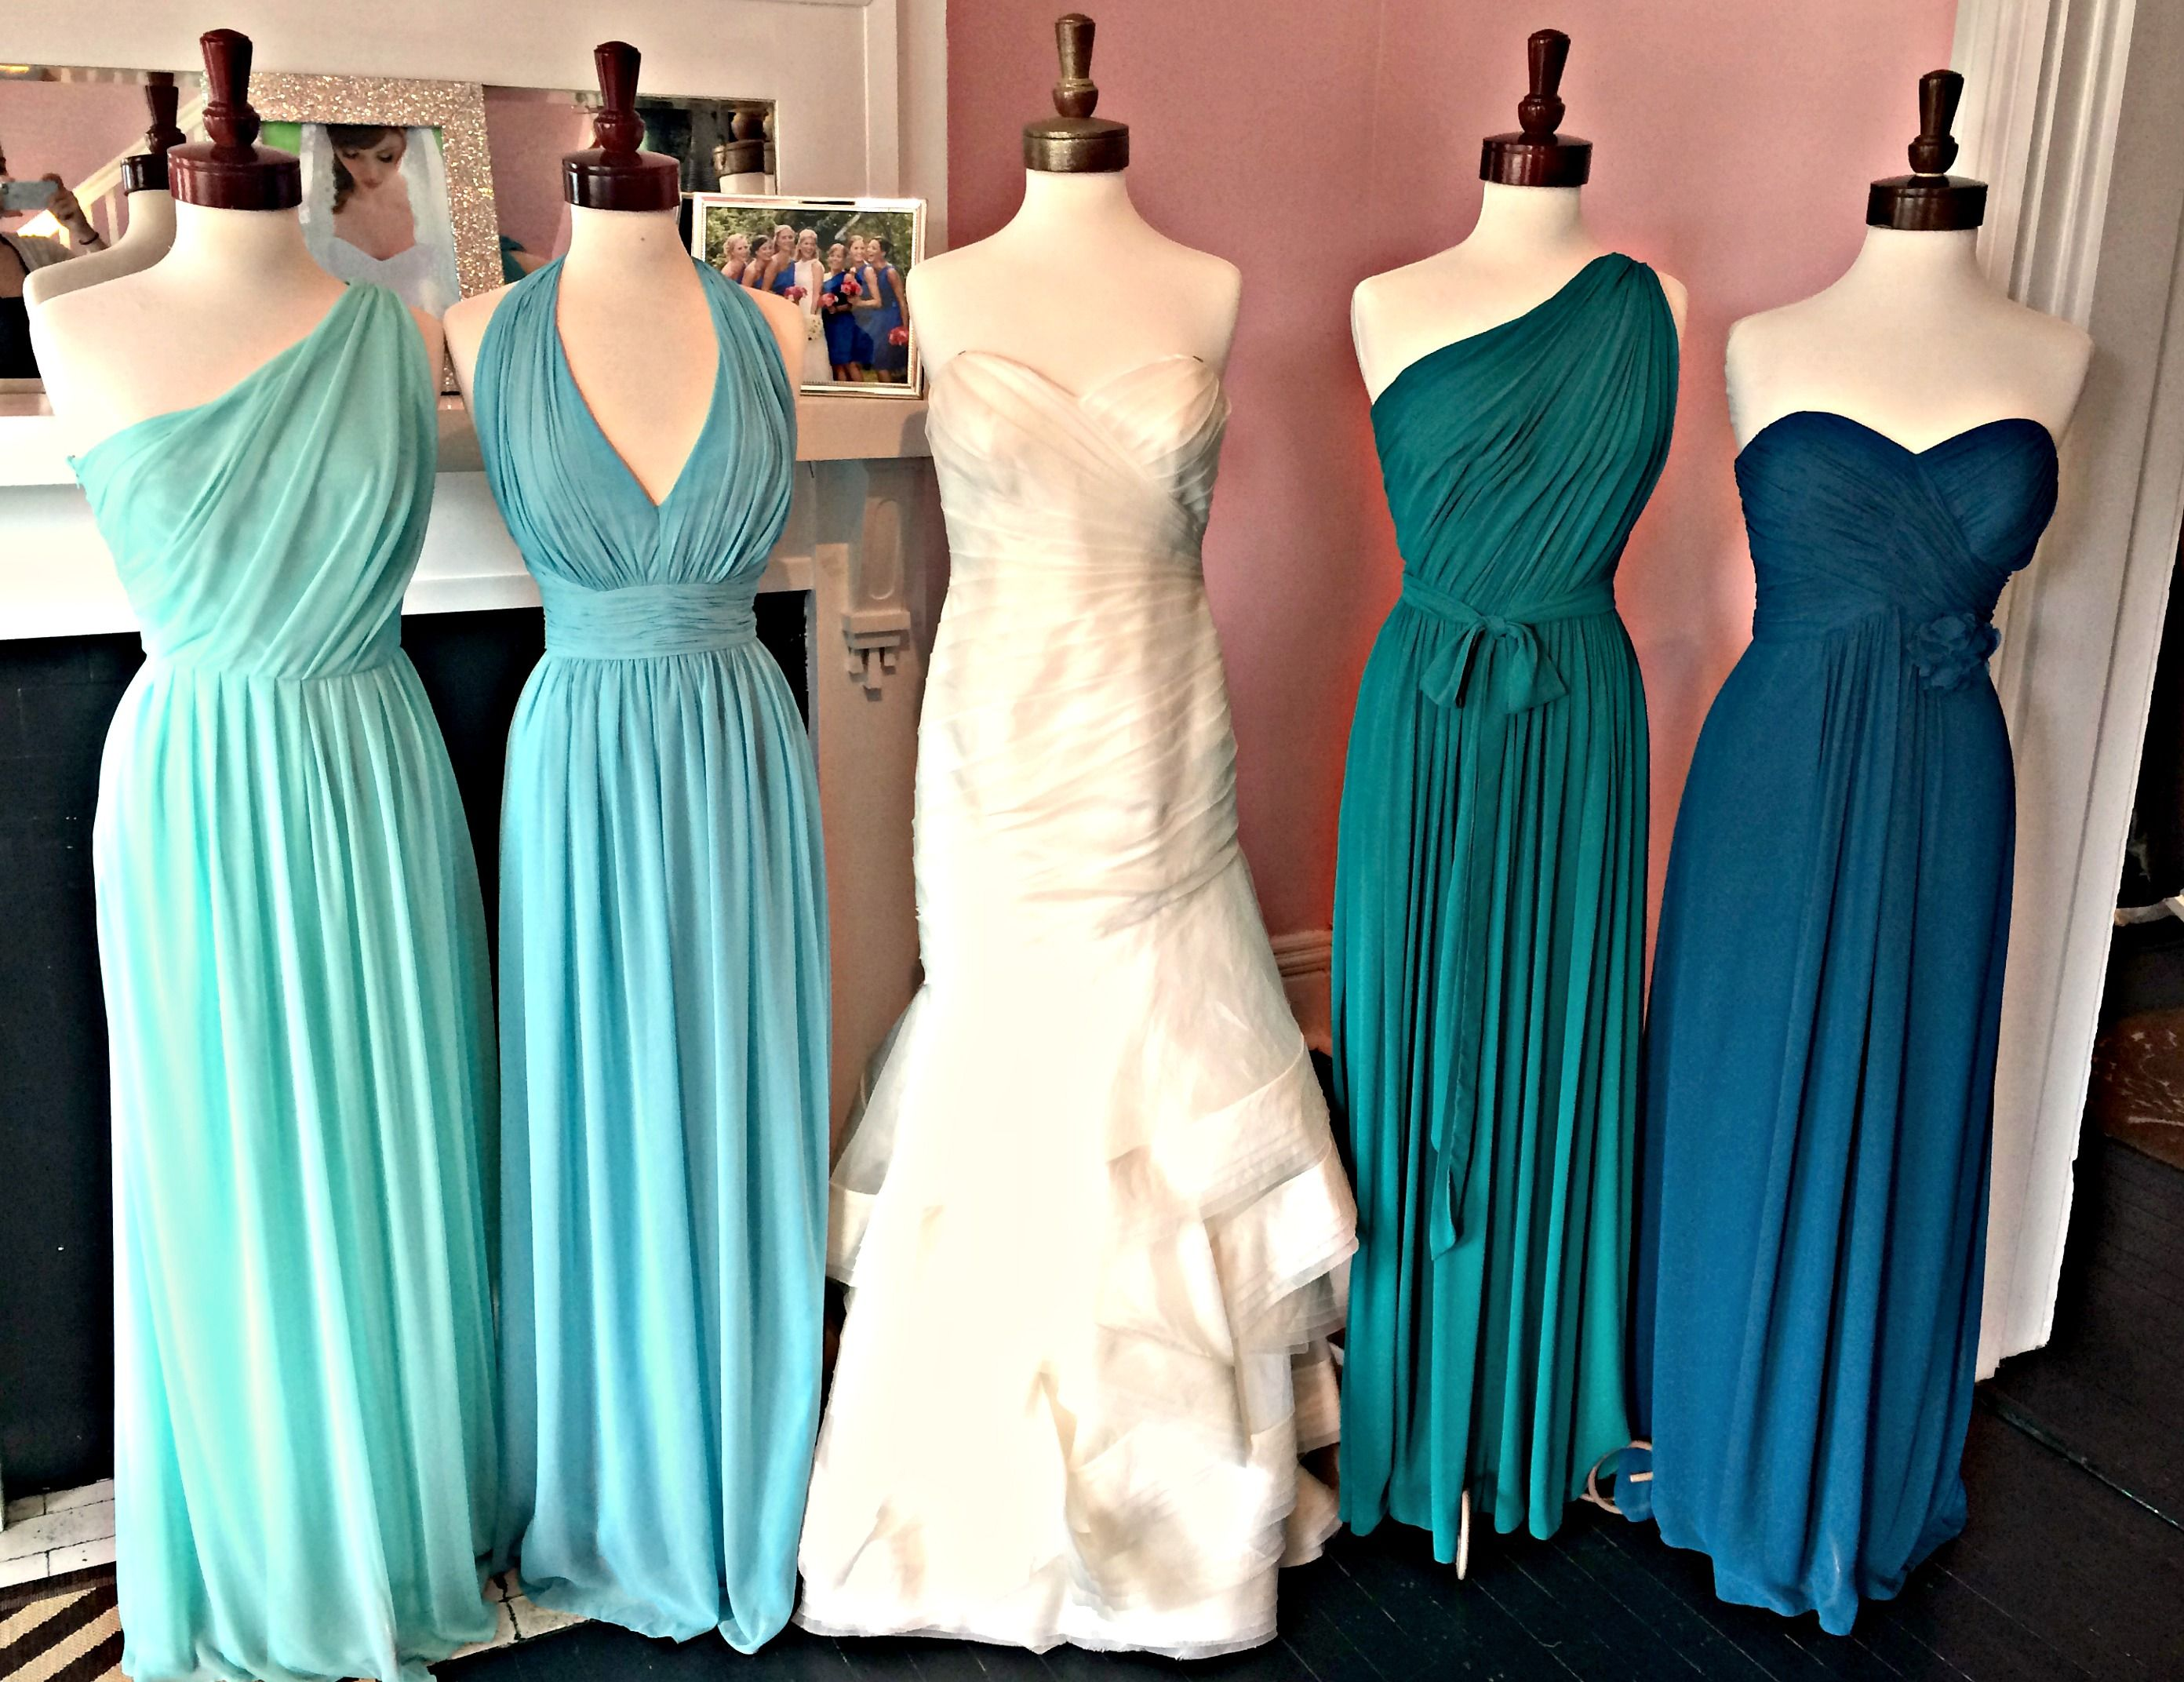 Teal ombre bridesmaid dresses google search wedding teal ombre bridesmaid dresses google search ombrellifo Gallery